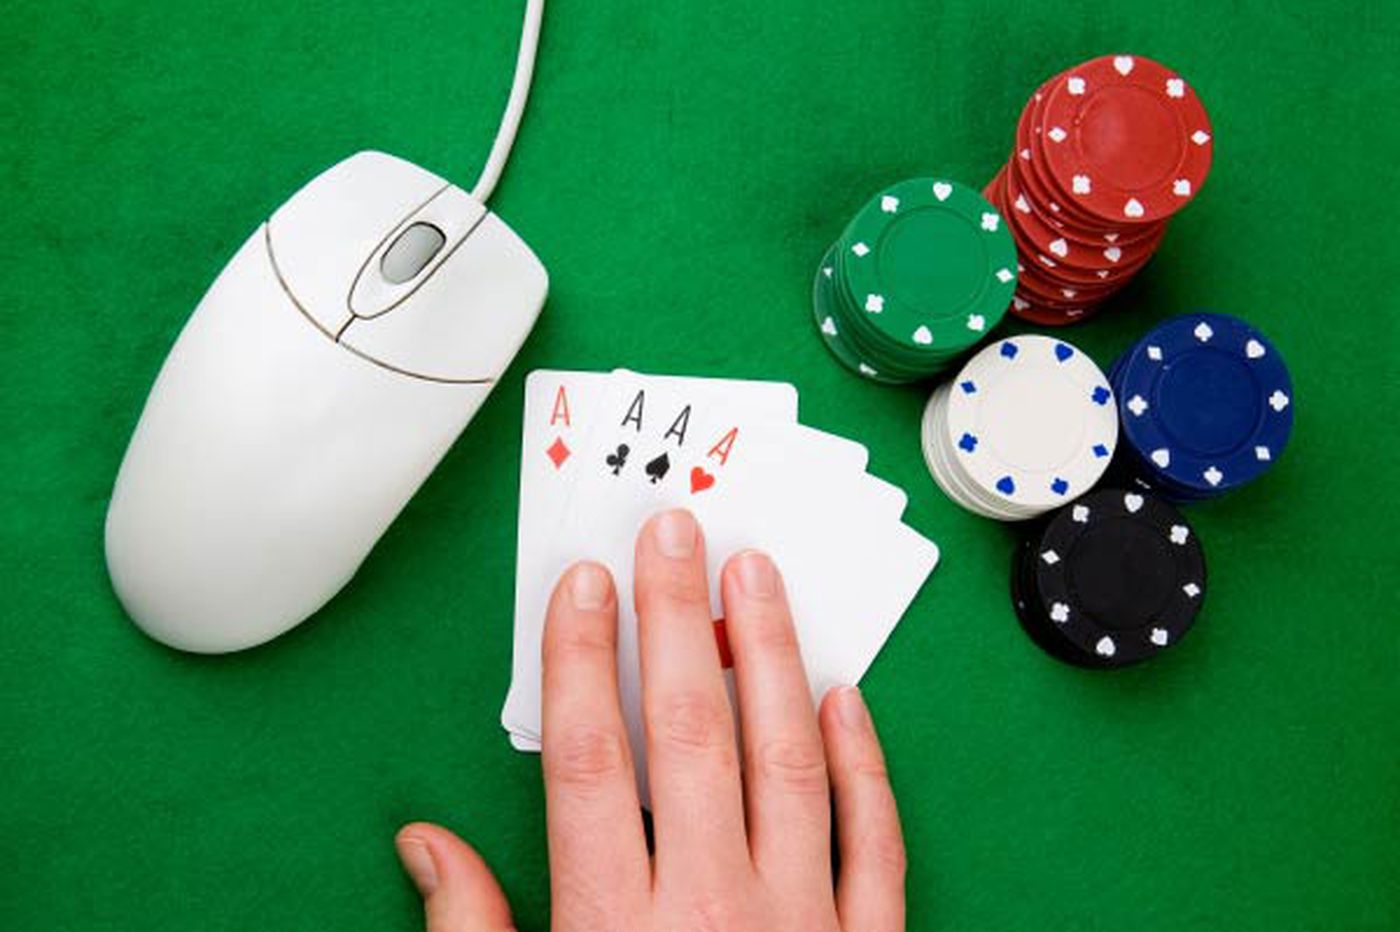 PA lawmaker wants to penalize illegal online gaming